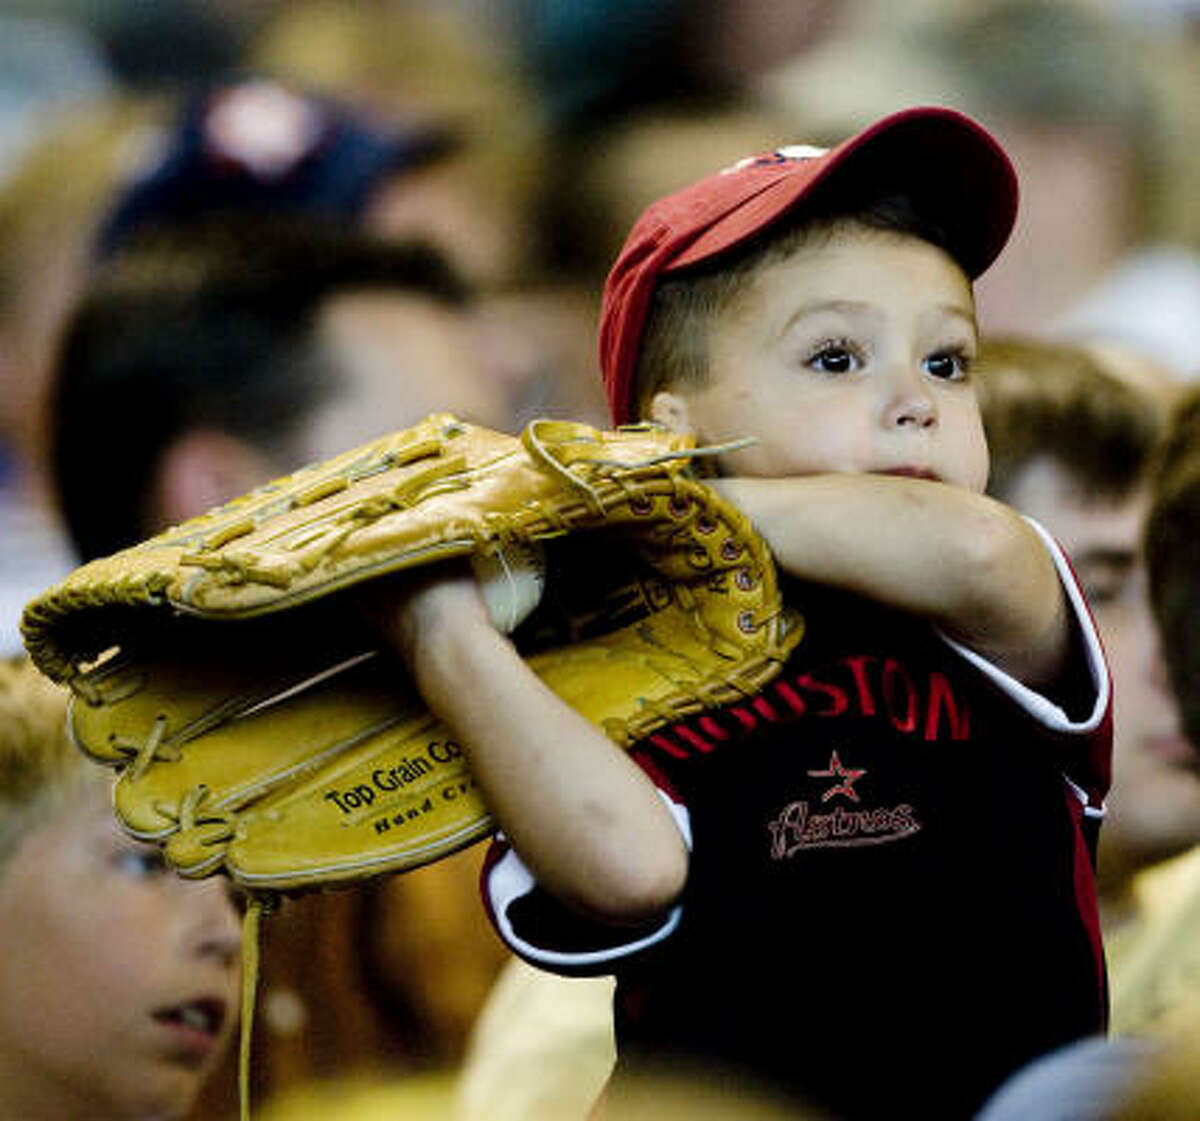 Astros fan Cade Powell, 2, holds a baseball glove during Thursday's series finale against the Royals.